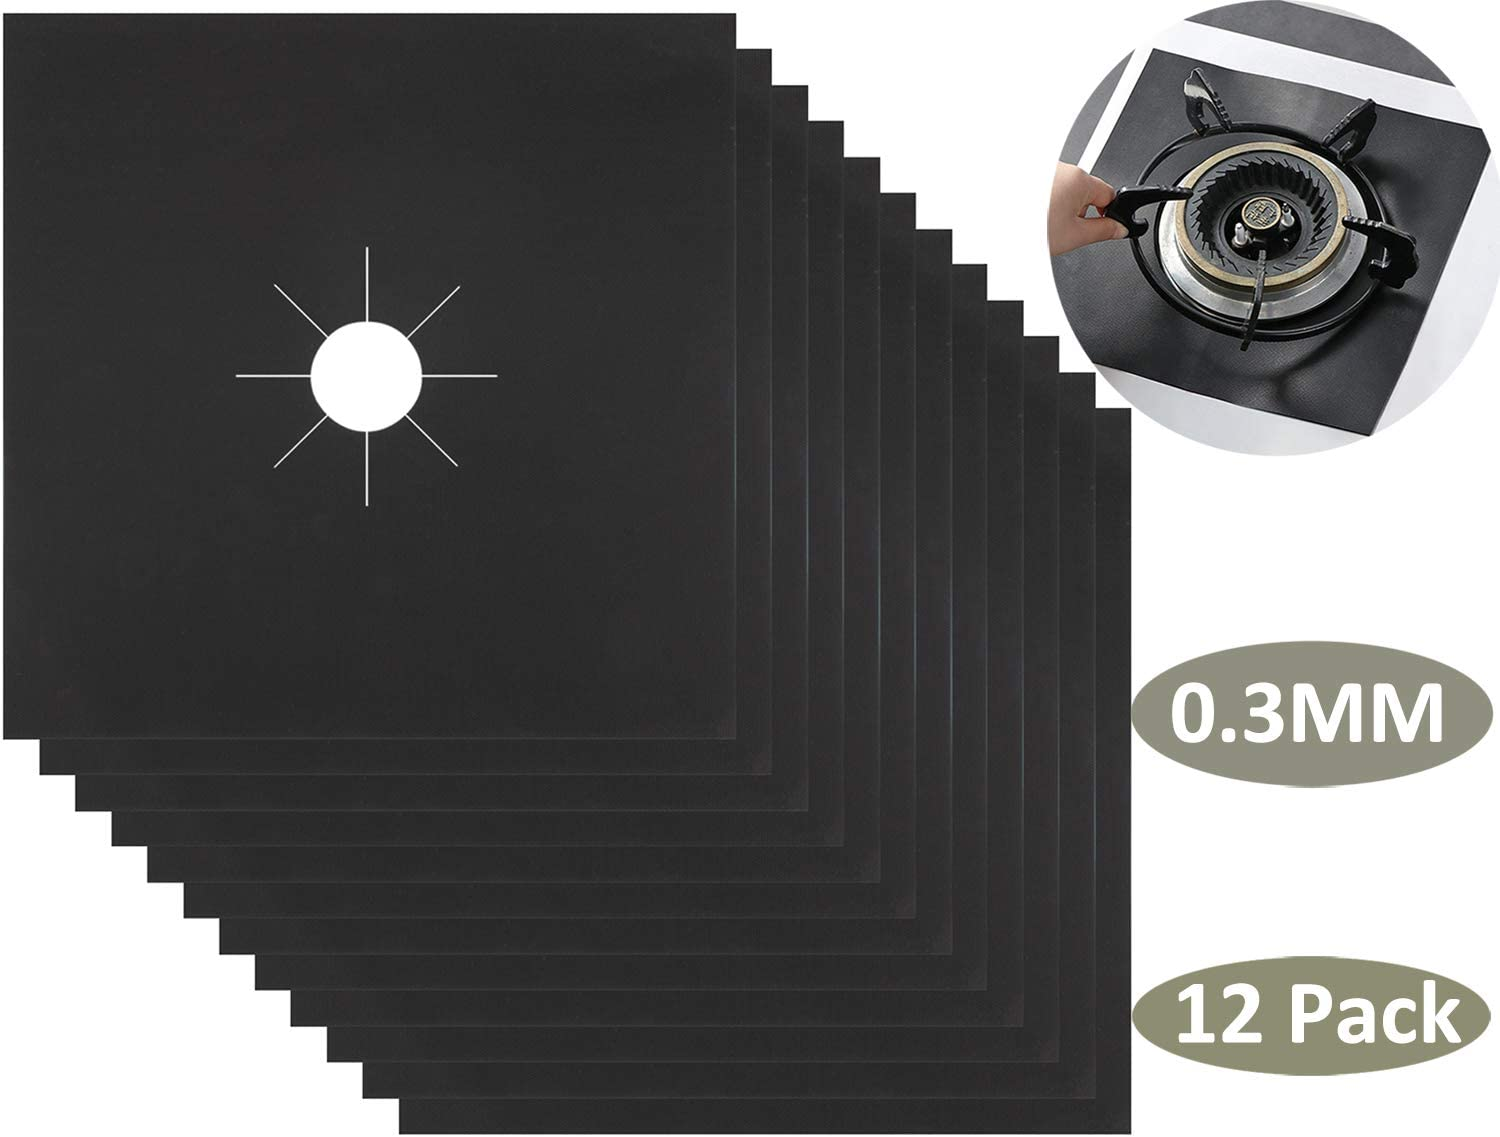 """Nicunom 12 Pack Stove Burner Covers, 0.3 MM Double Thickness Gas Stove Protectors, Reusable Non-Stick Gas Stove Burner Liners for Kitchen Cooking, Easy to Clean Heat Resistant,10.6"""" x 10.6"""", Black"""